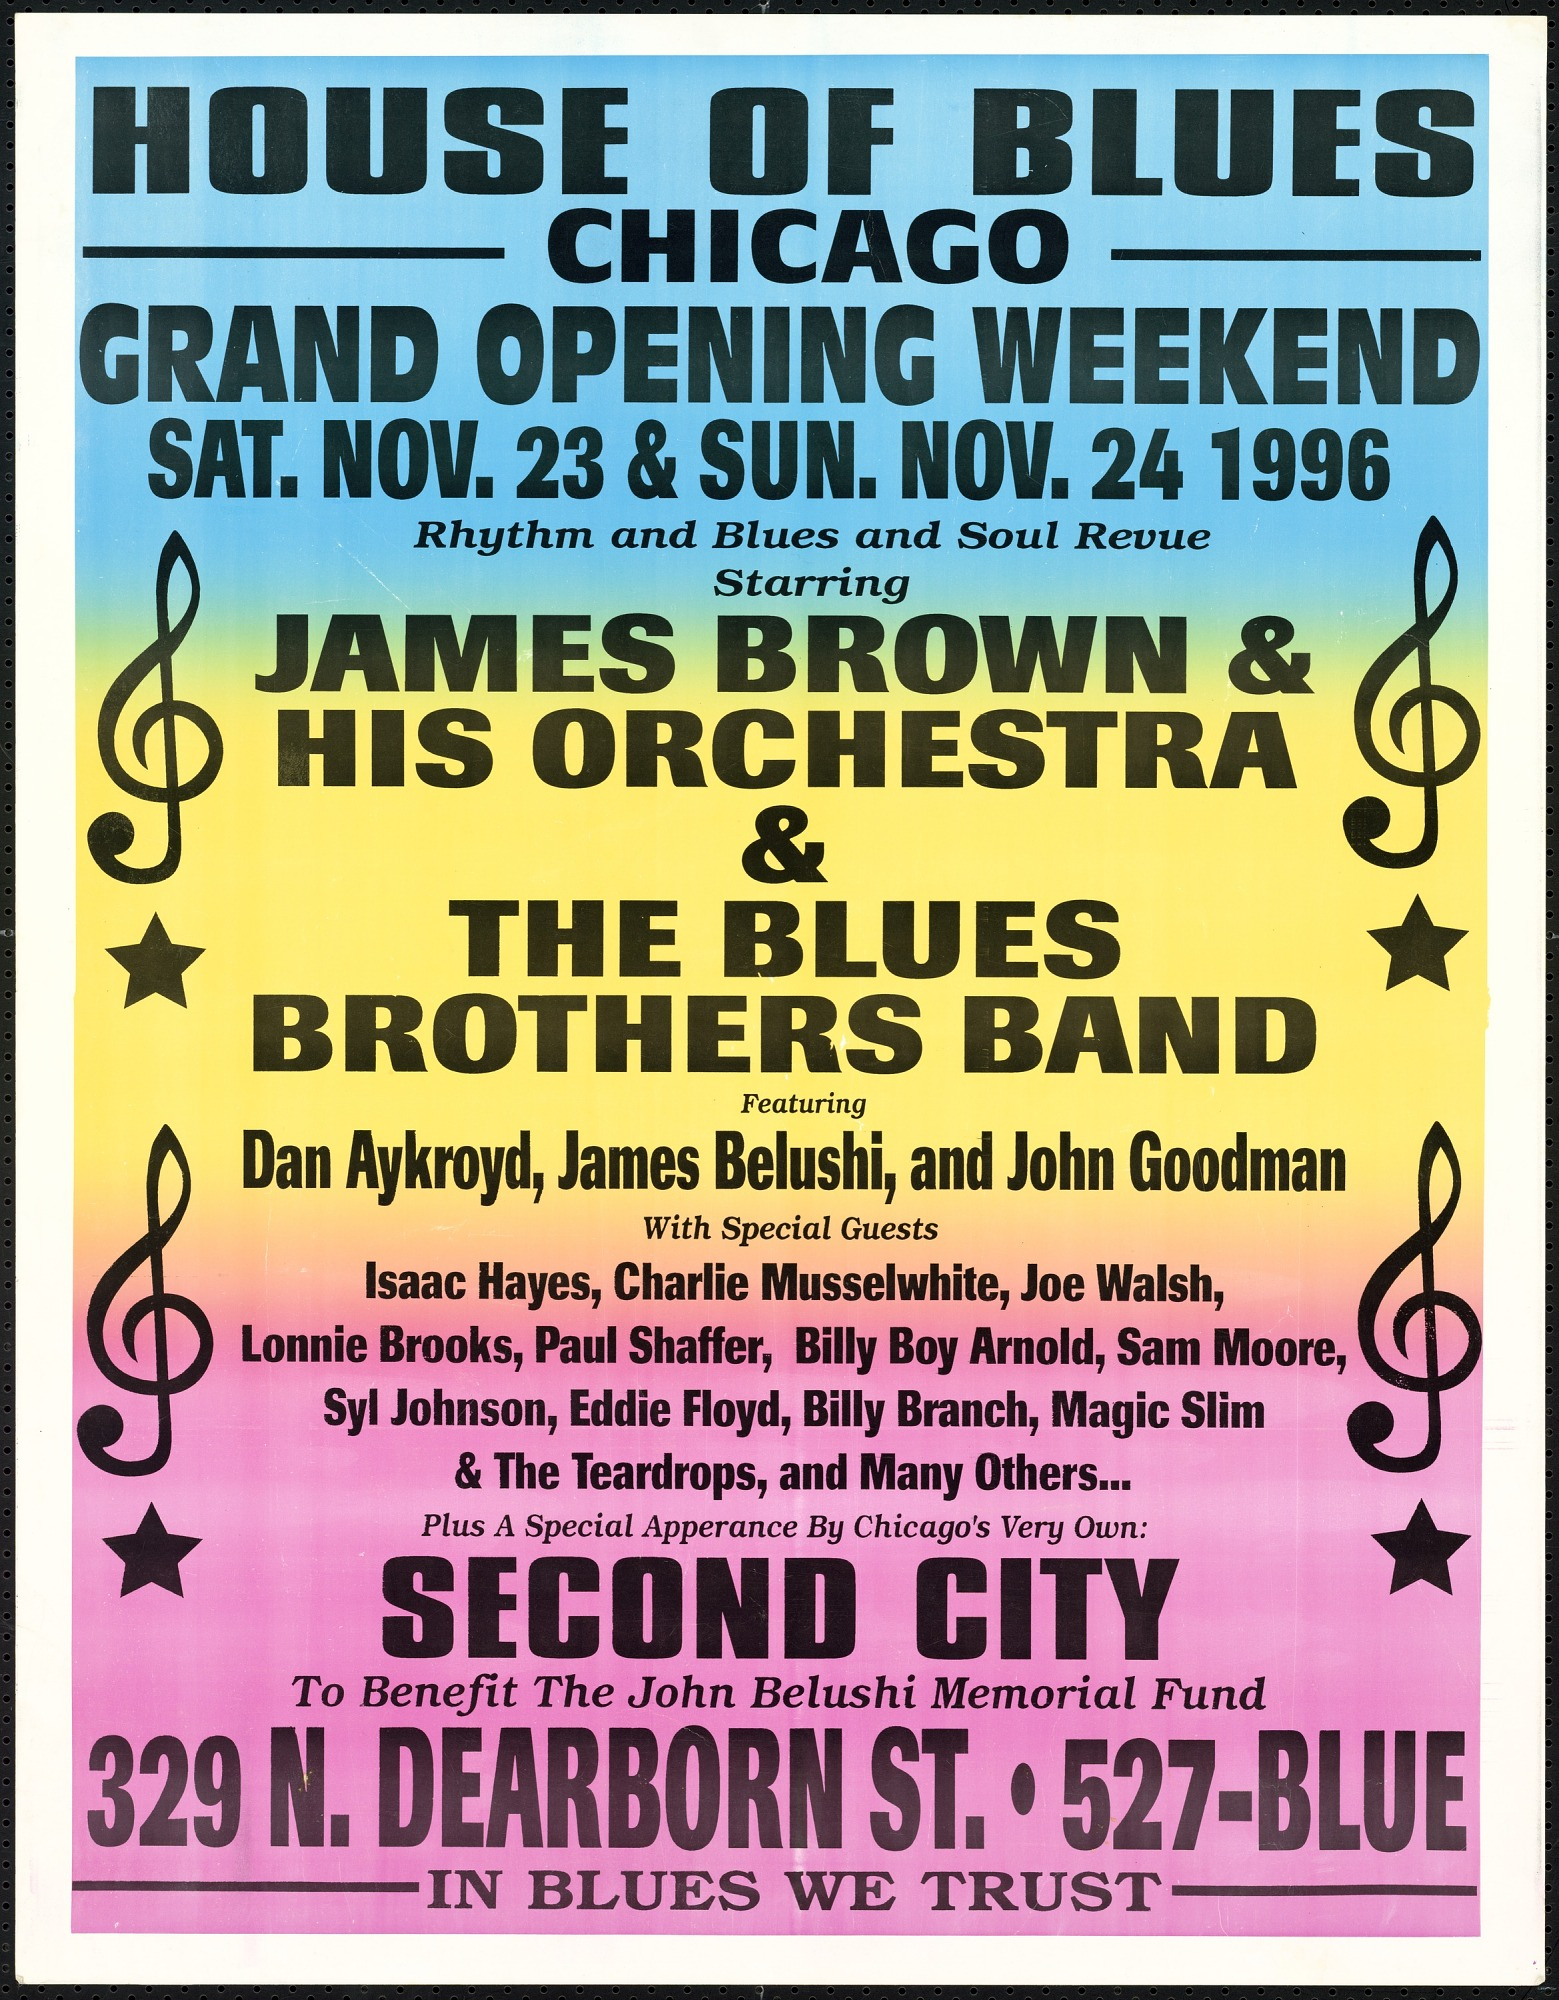 images for Broadside for the House of Blues featuring a concert by James Brown and others